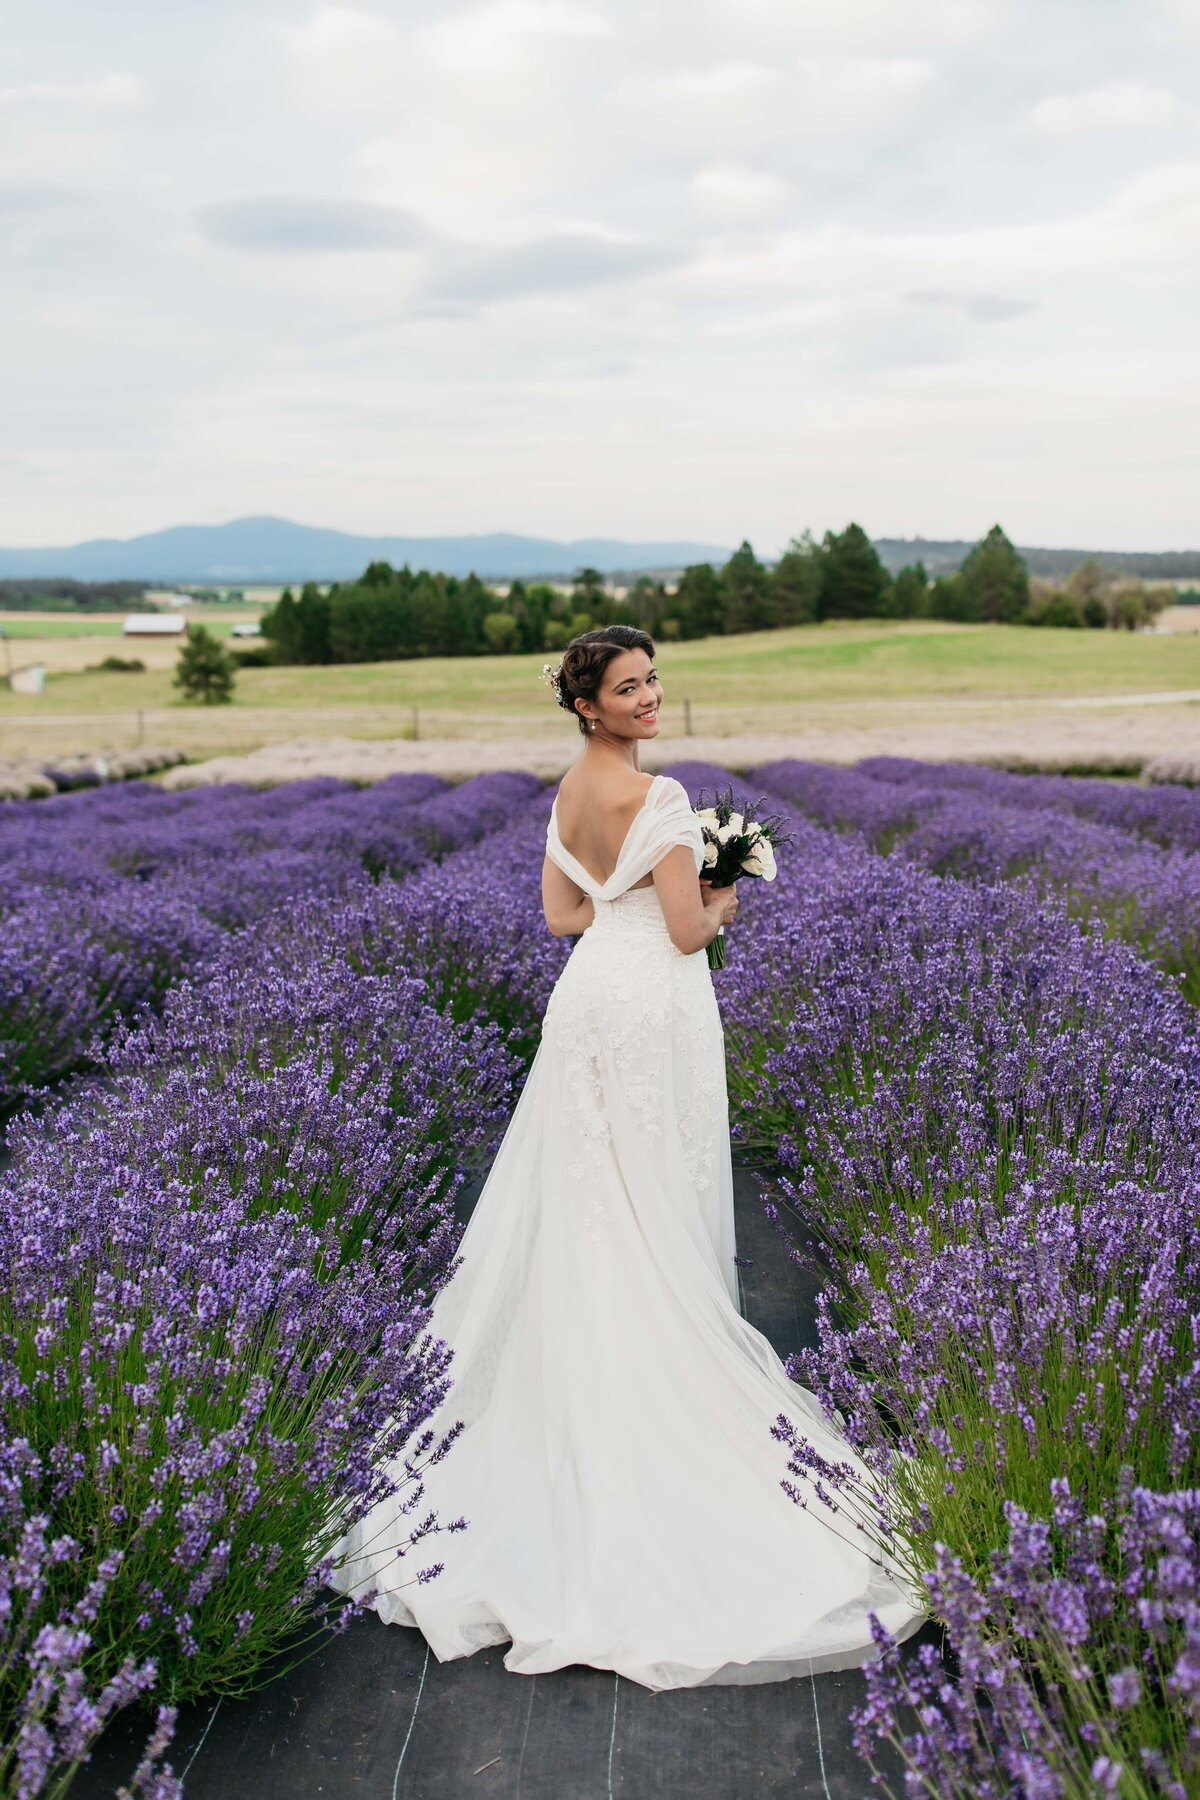 Lavender Manor Spokane Washington - Outdoor Elopement Photographer in Spokane - Clara Jay Photo